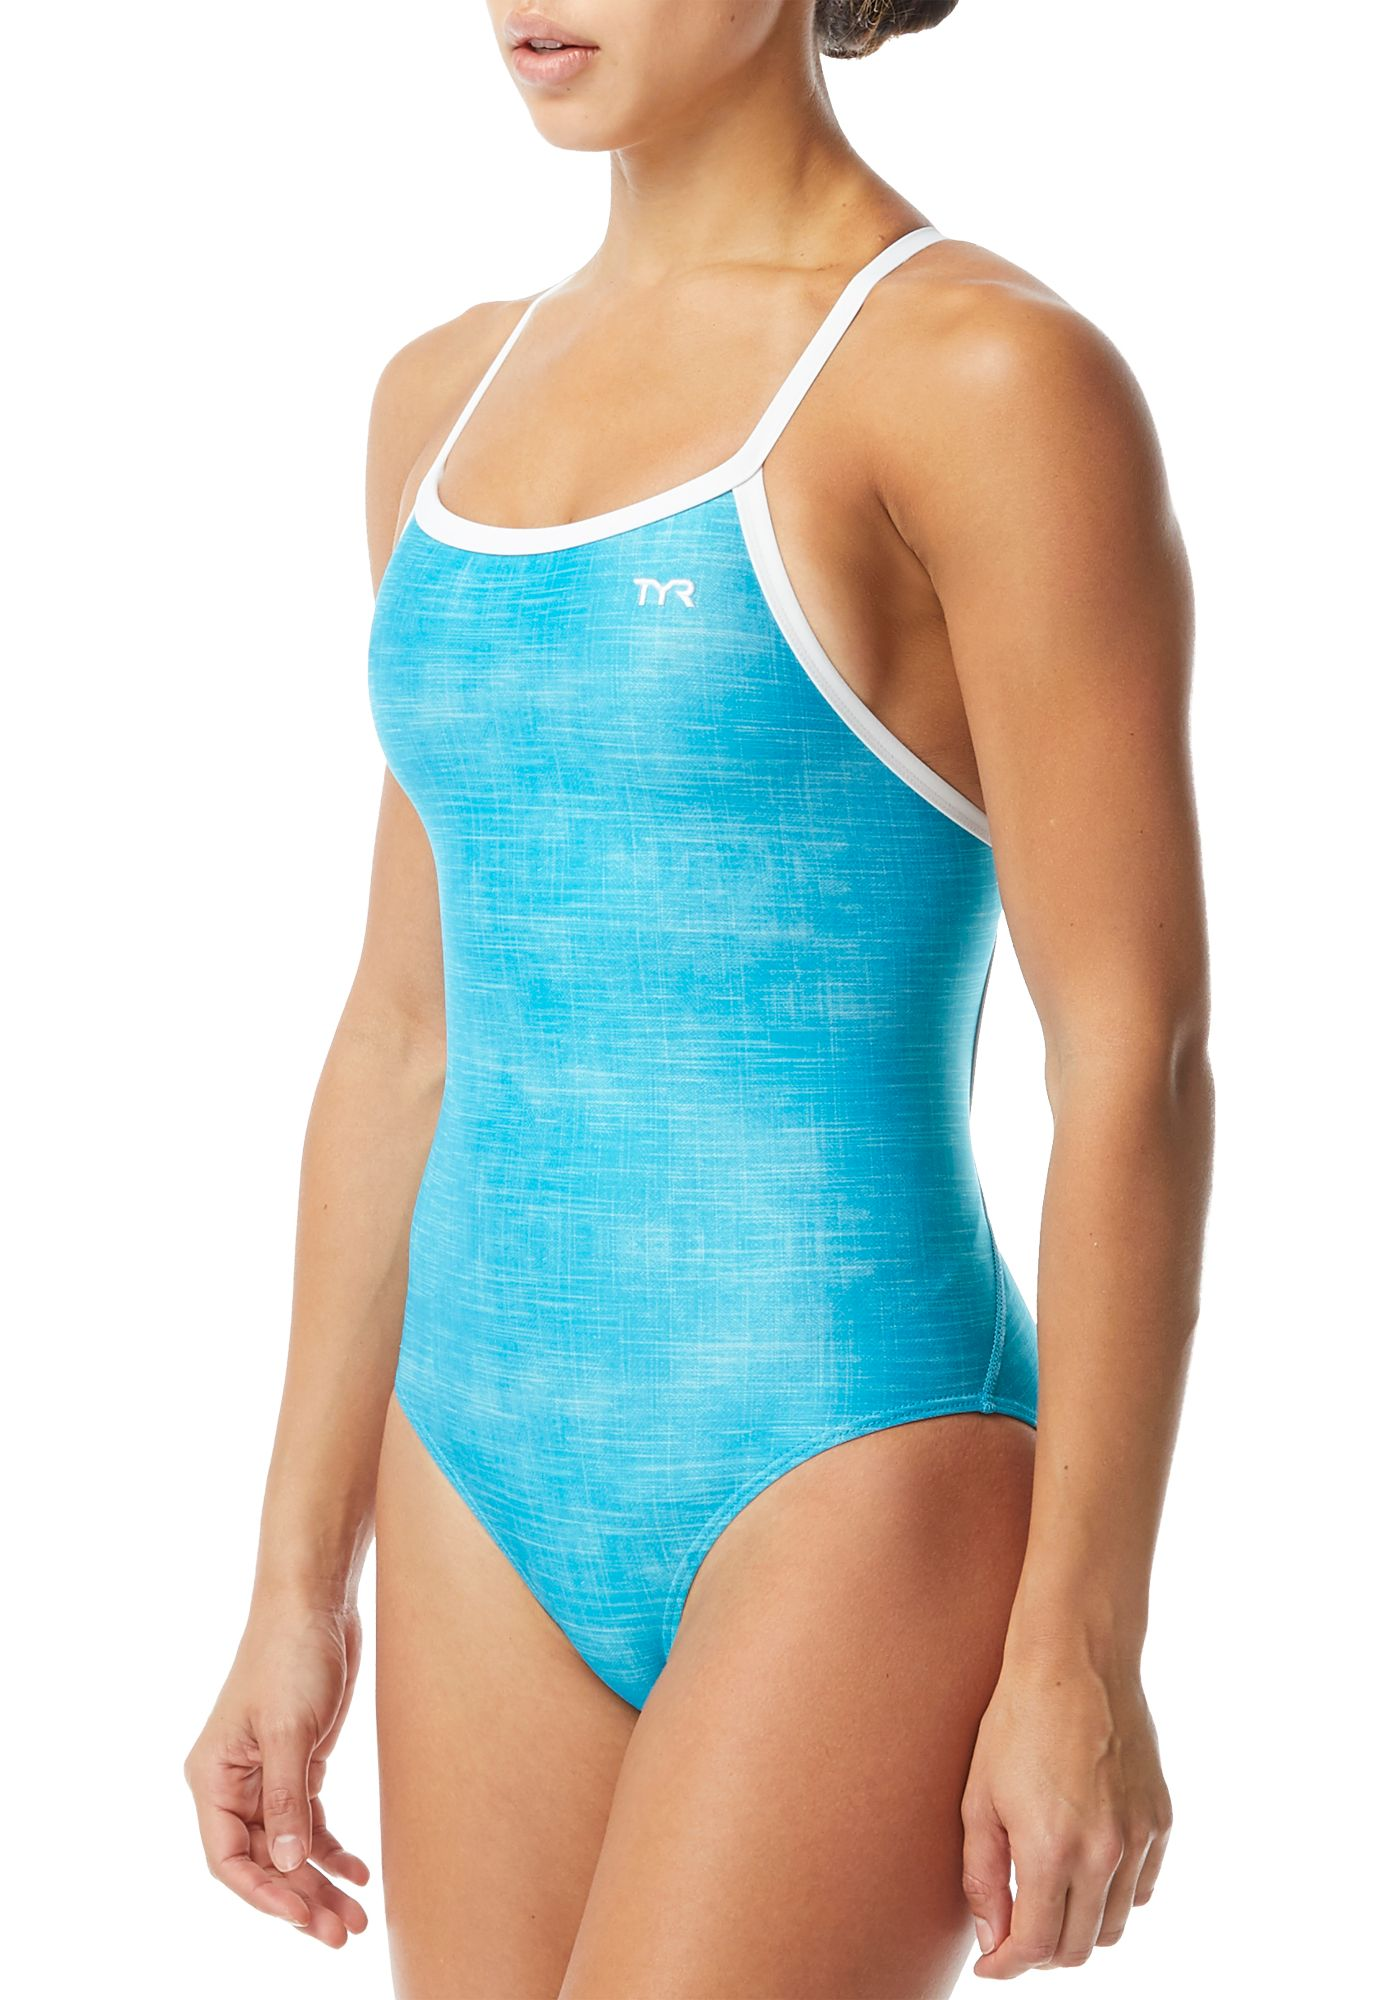 TYR Women's Sandblasted Diamondfit Racerback Swimsuit